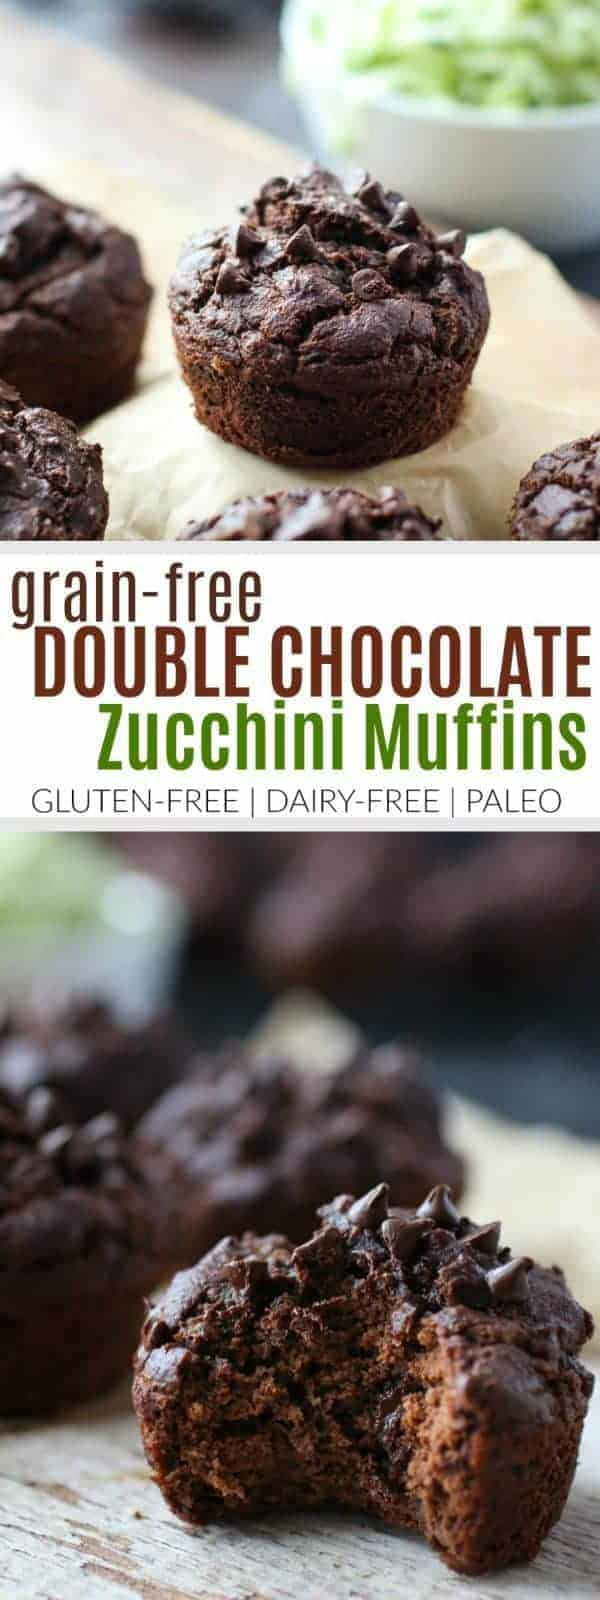 Grain-free Double Chocolate Zucchini Muffins - The Real Food ...